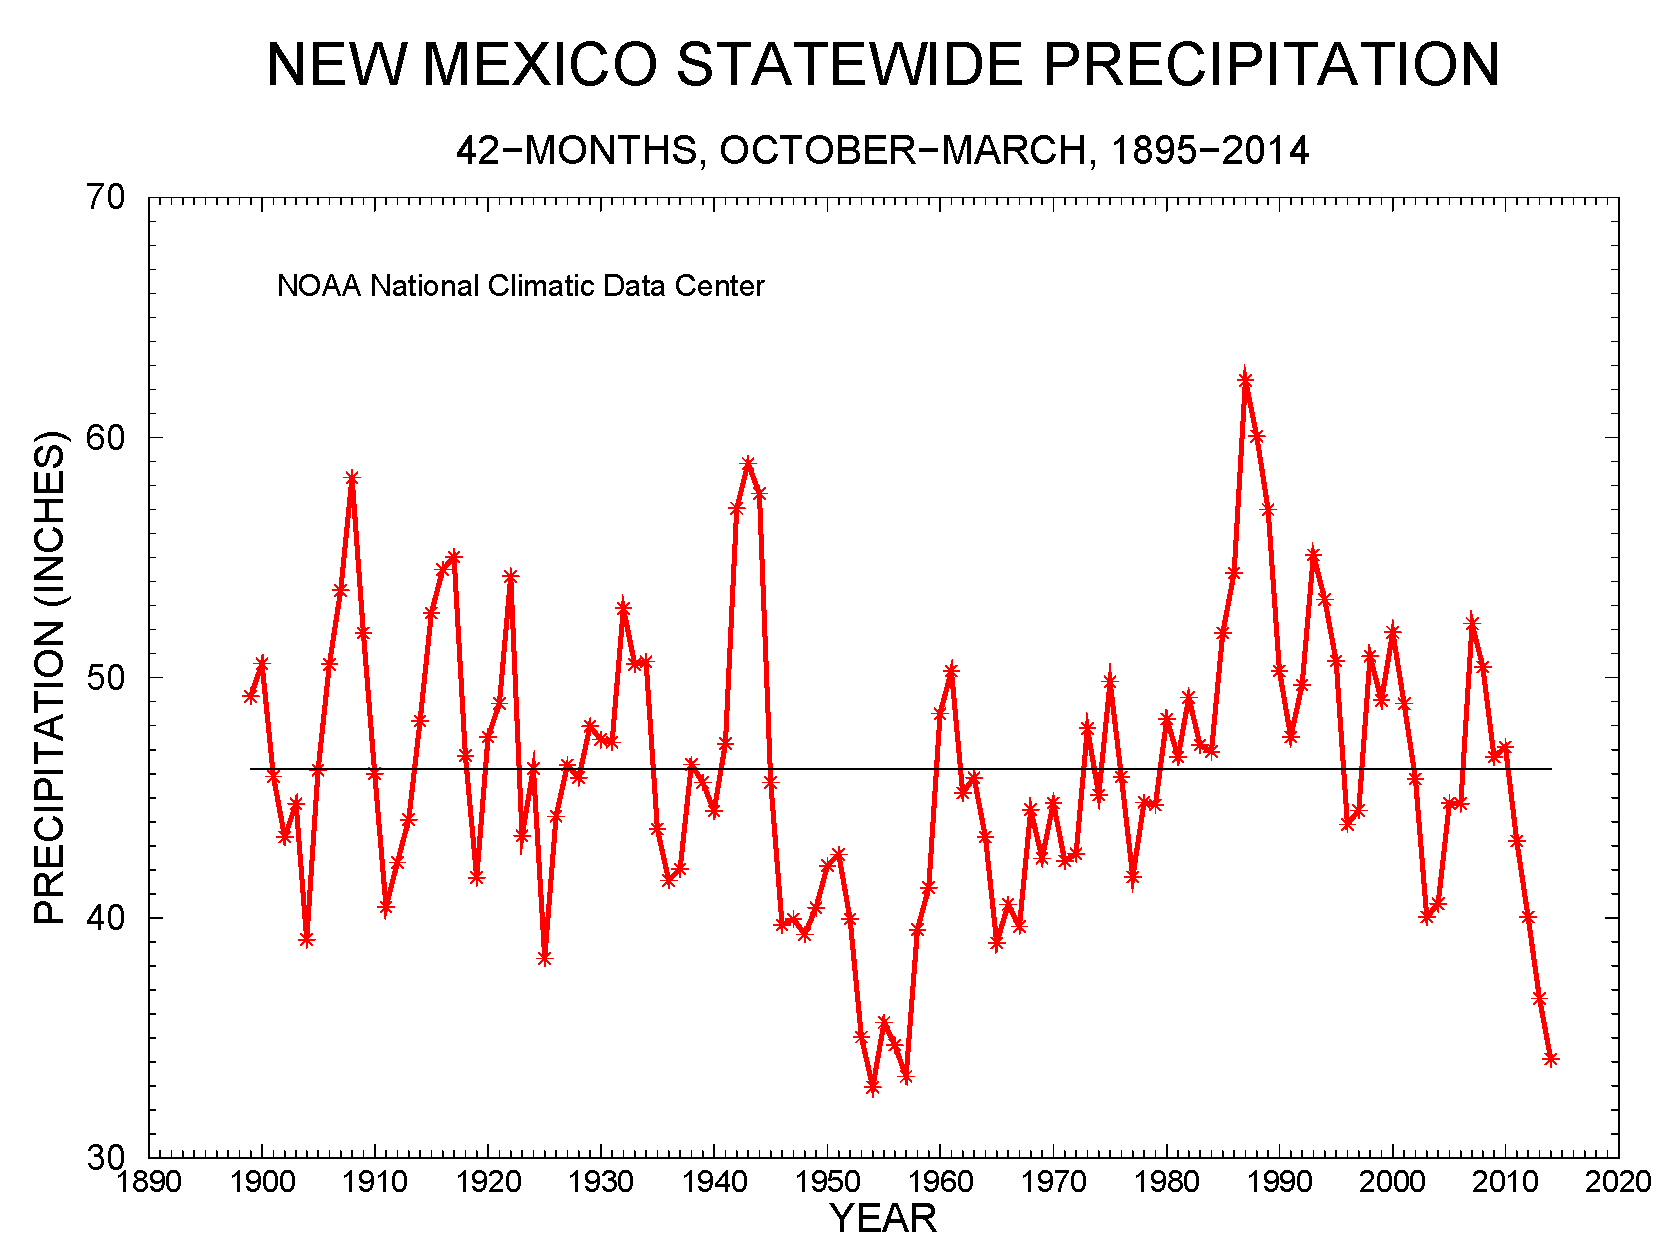 New Mexico statewide precipitation, 42-month periods October-March, 1895-2014